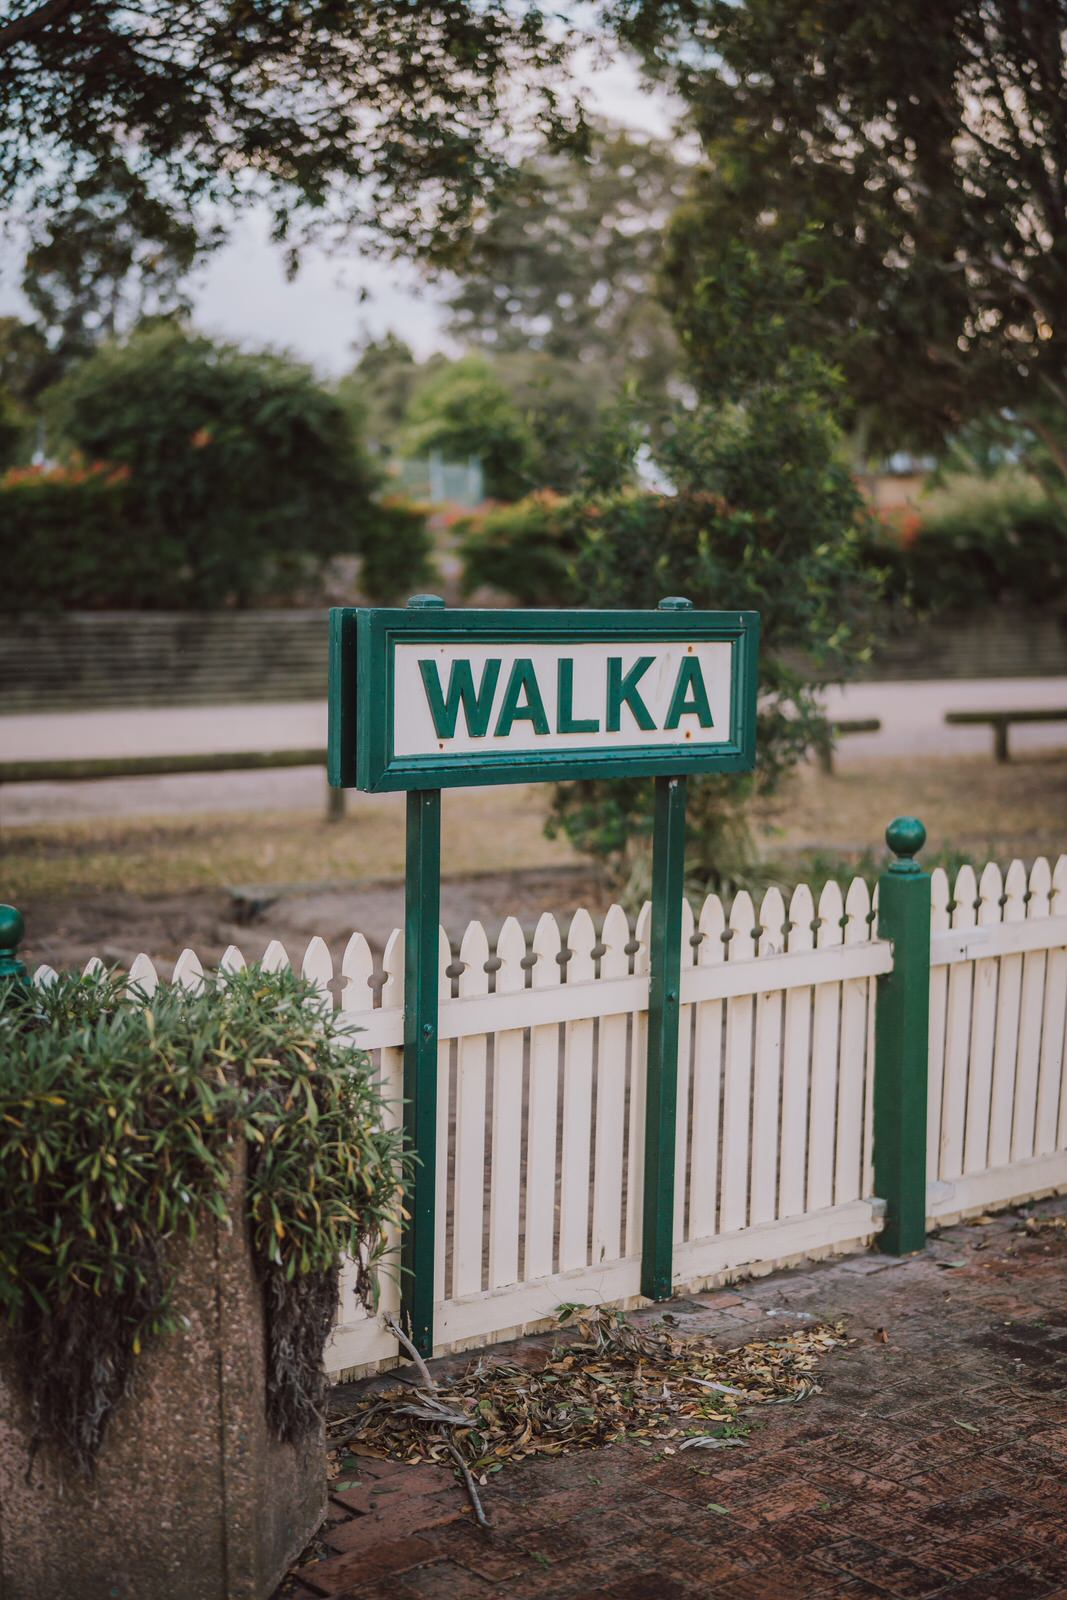 tayla-james-walka-water-works-oakhampton-497